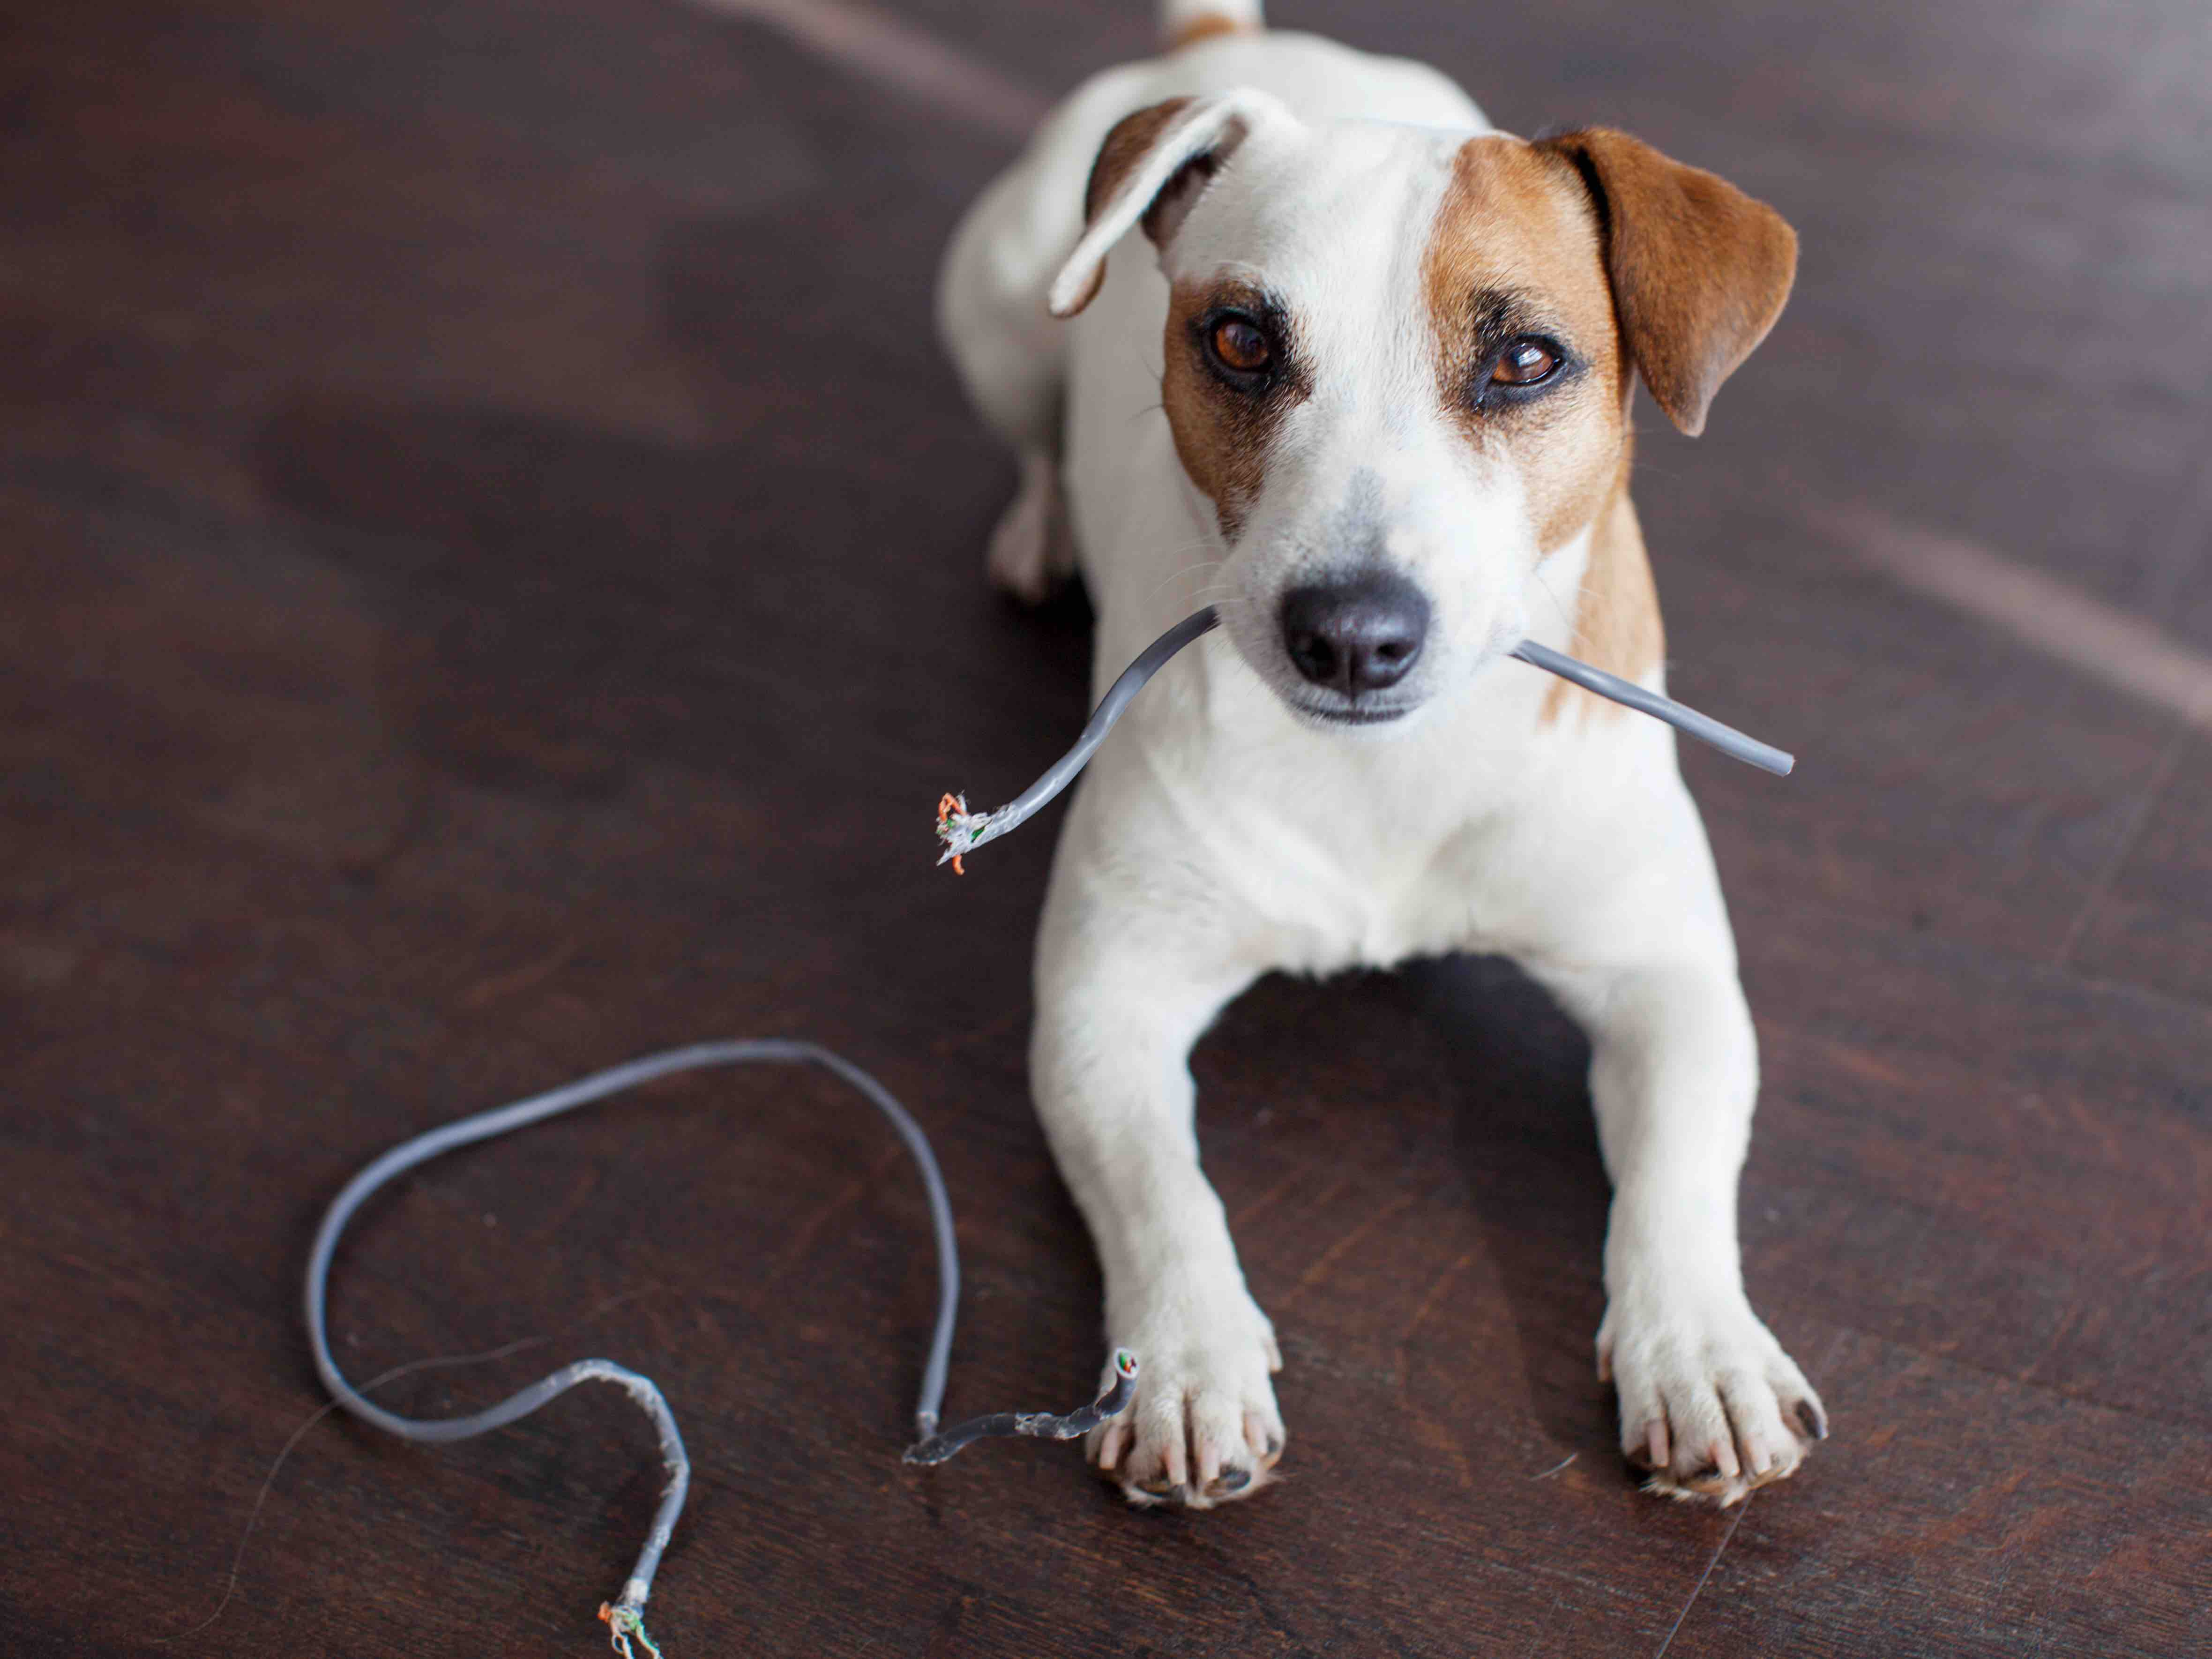 Dog chewing wiring